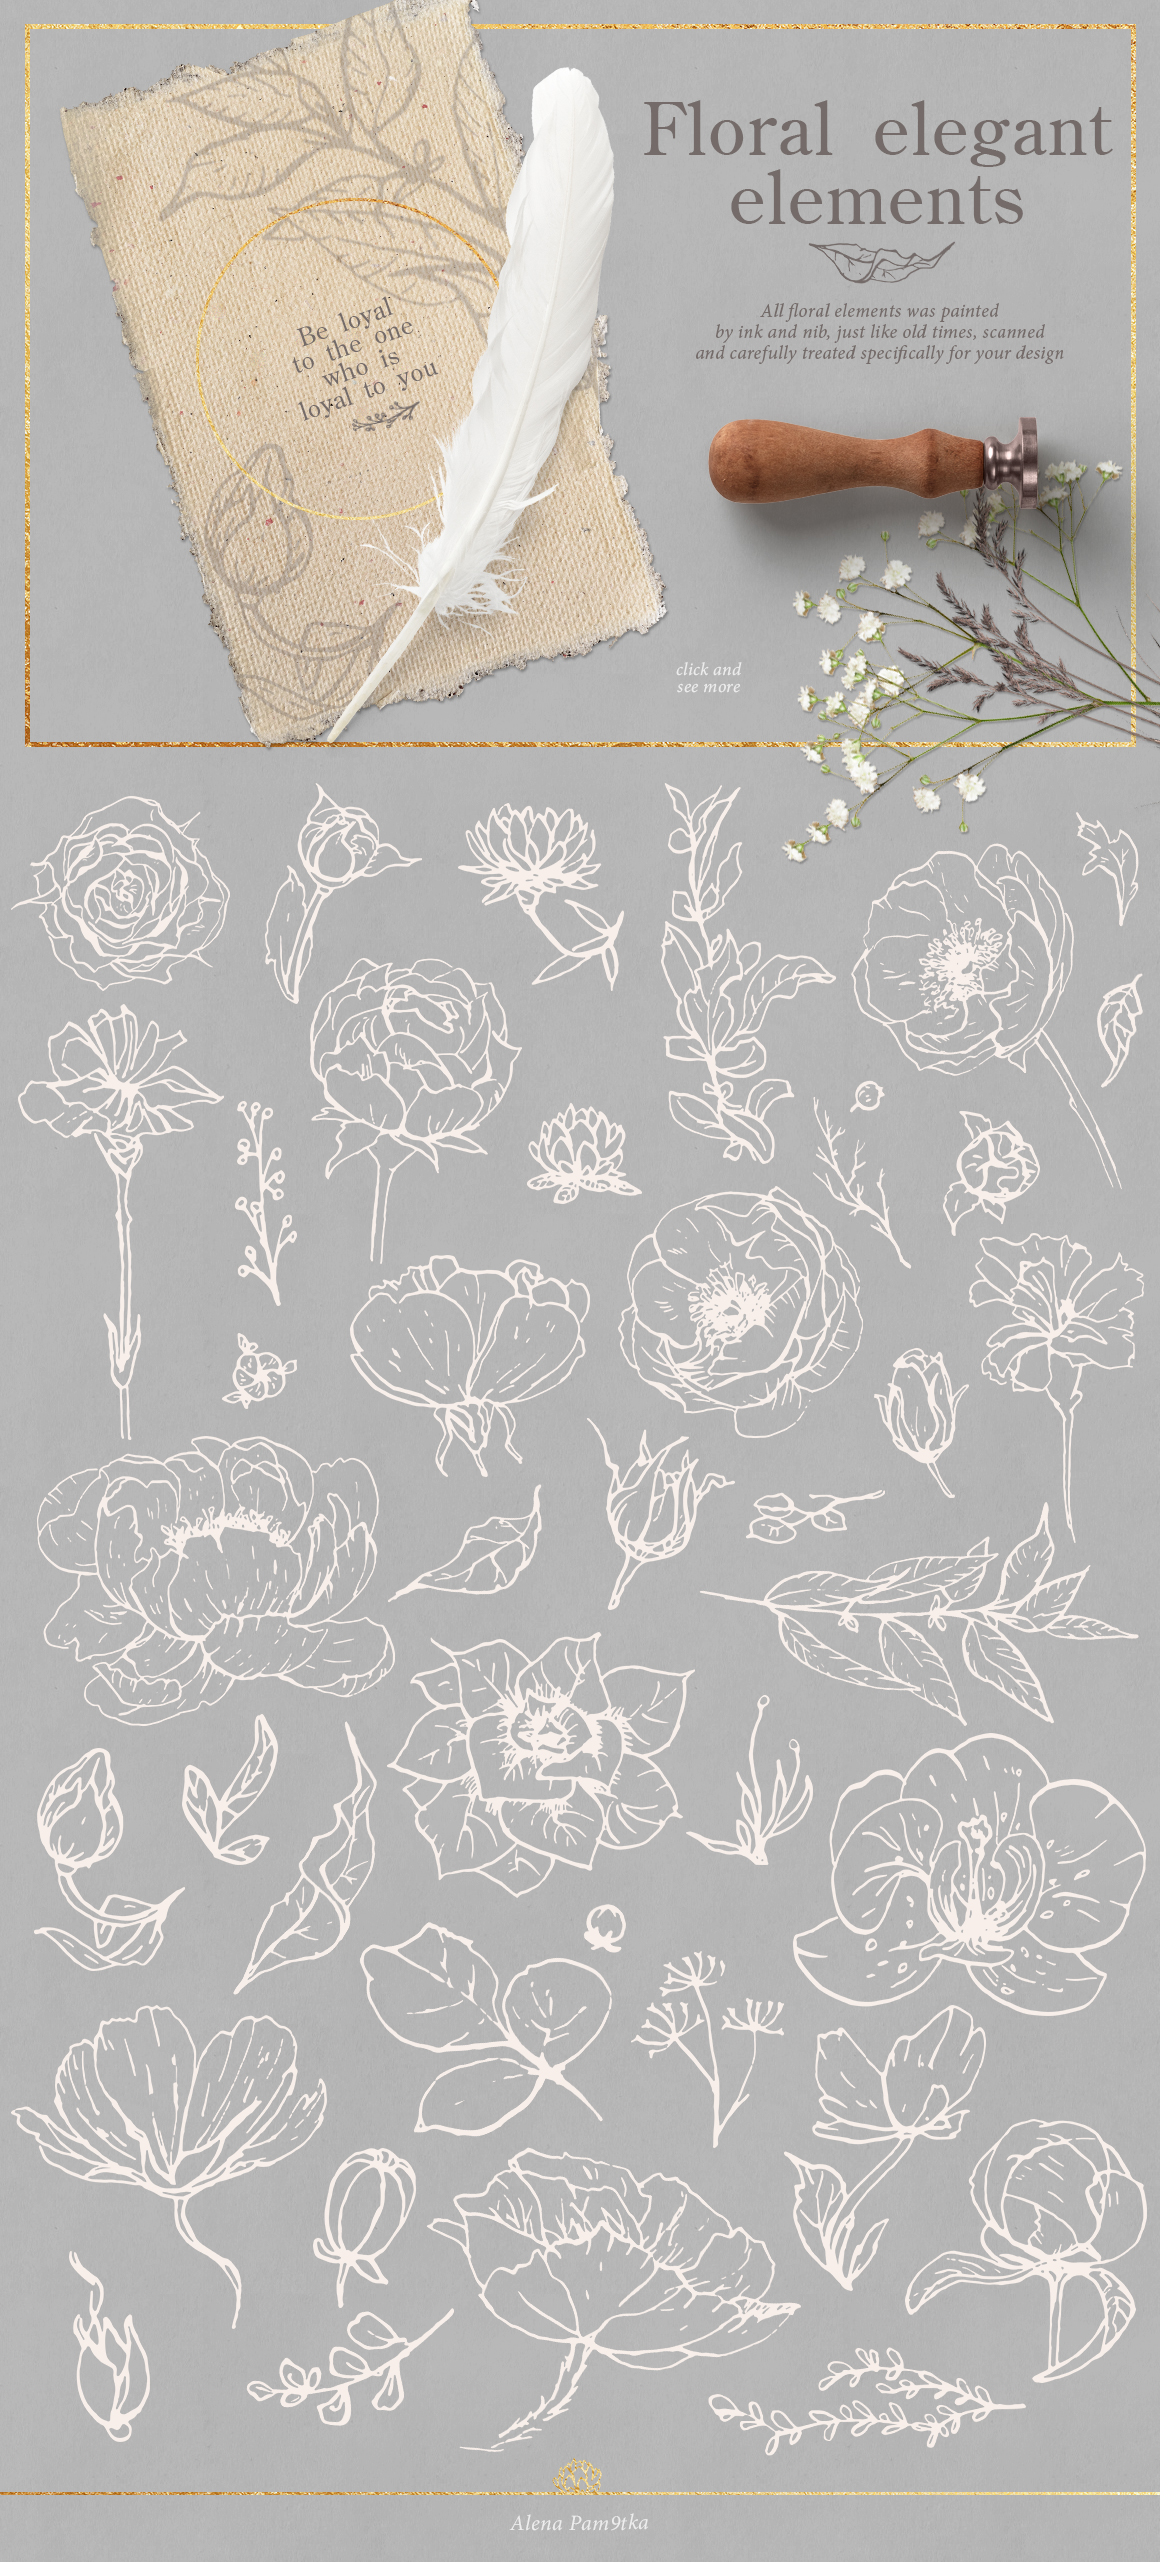 Flower outlines & patterns example image 6